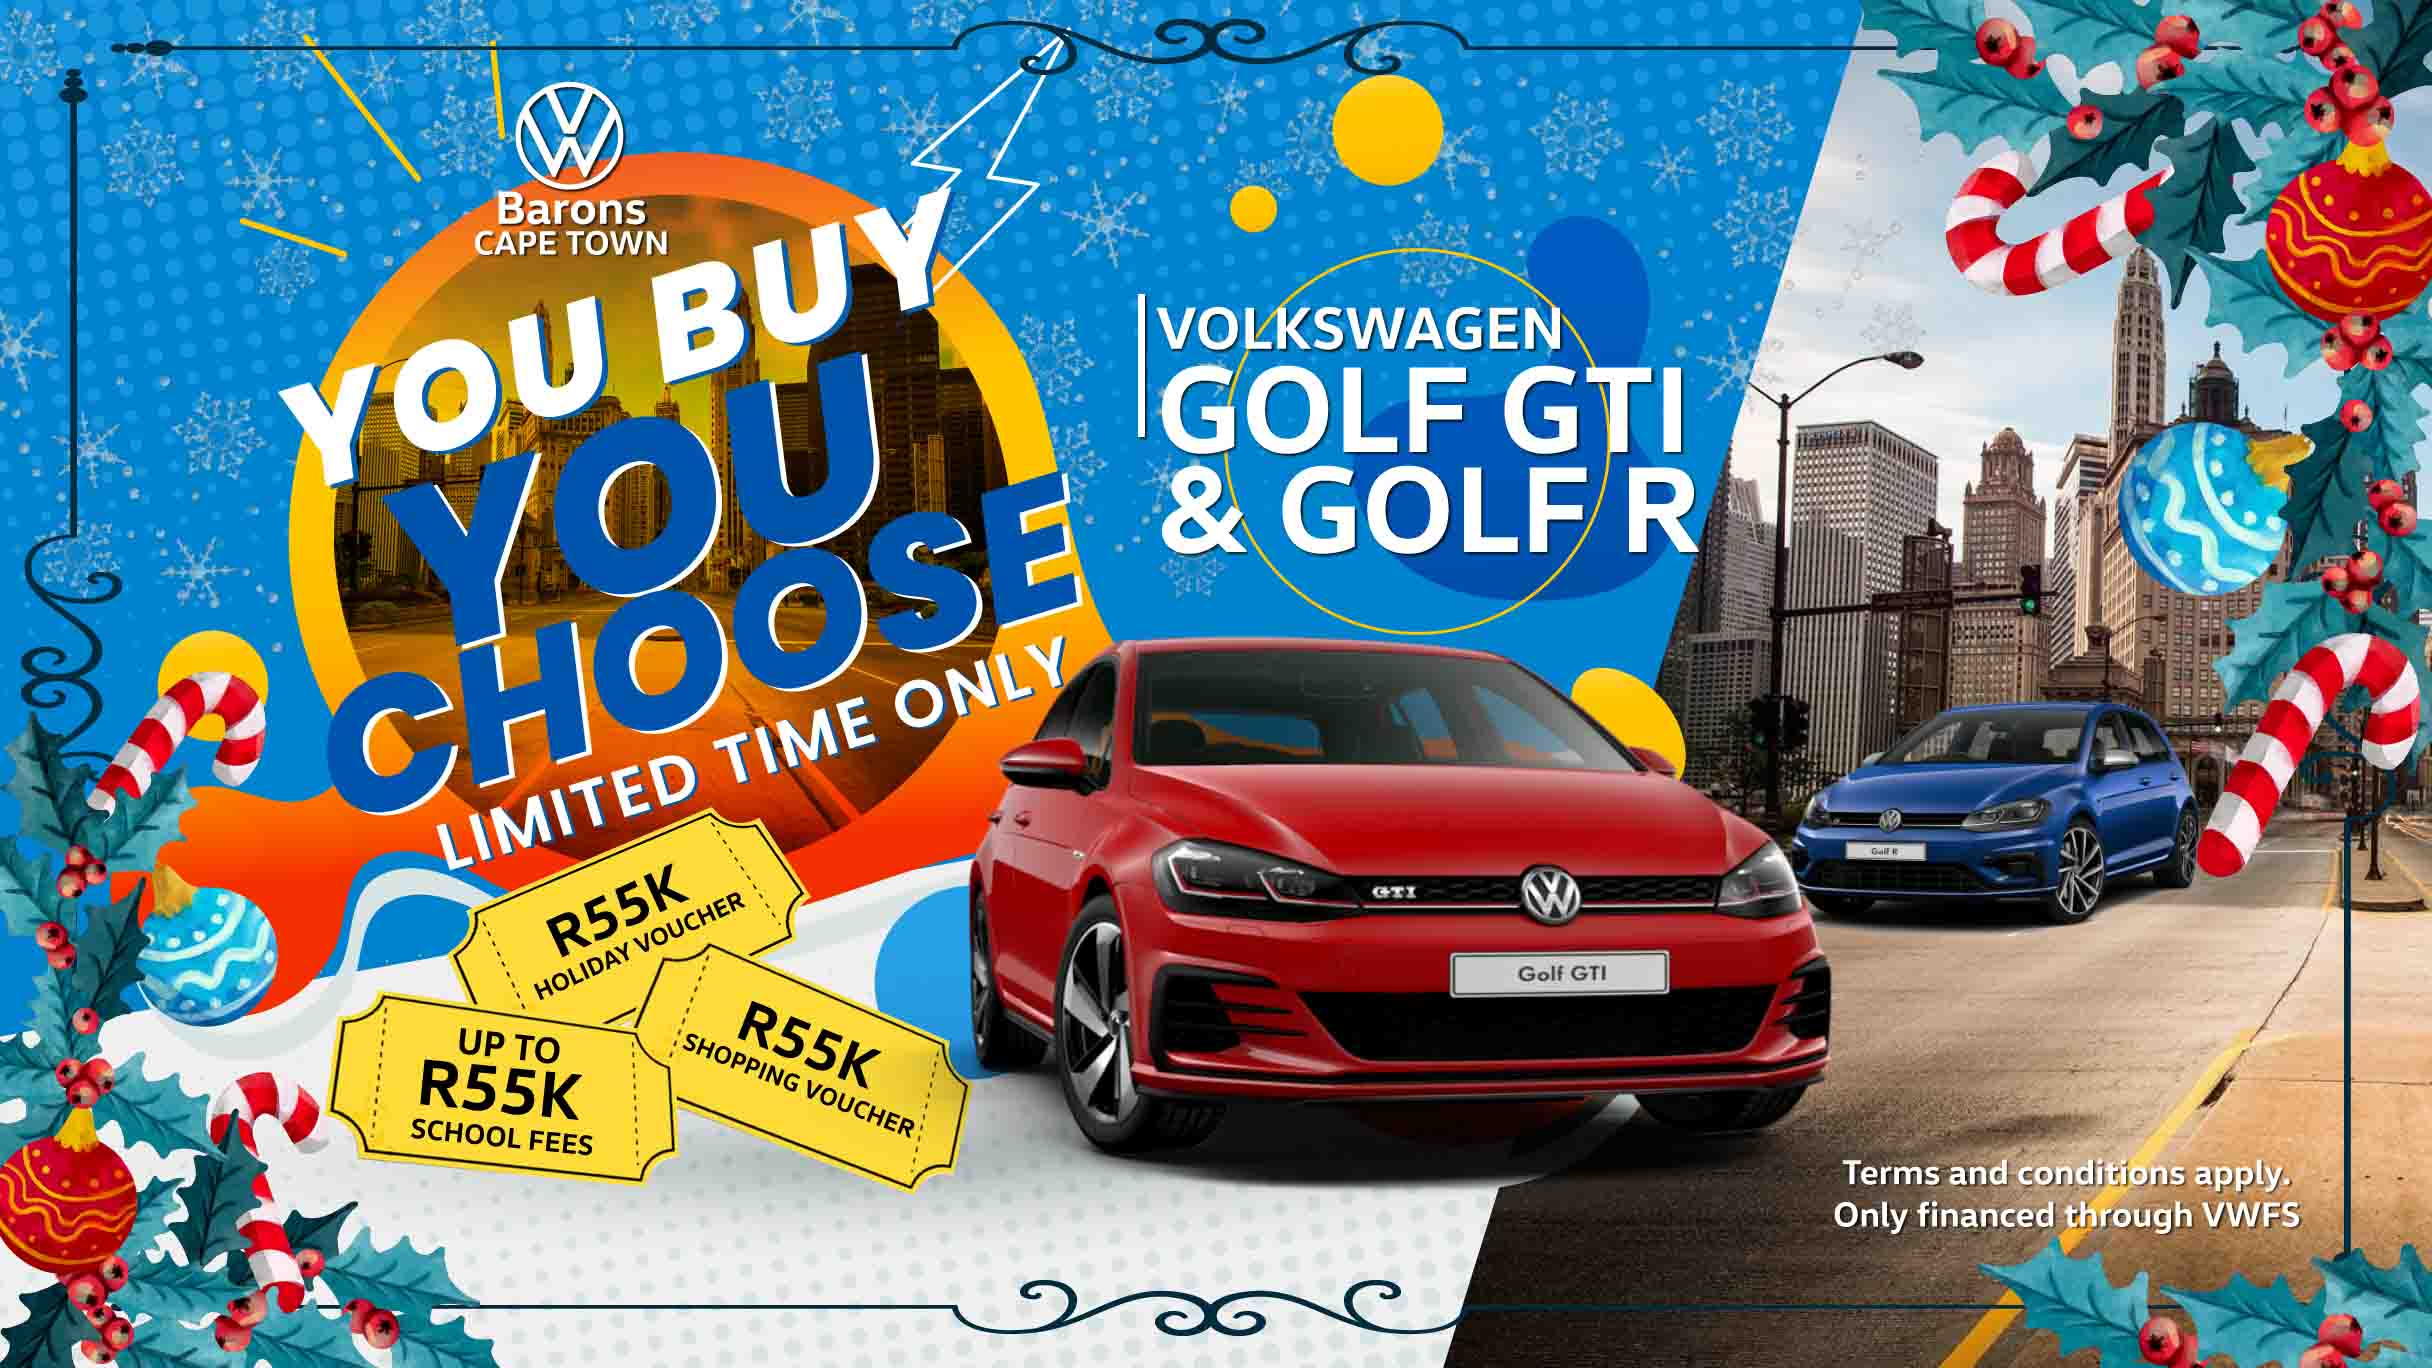 Festive deal on the Golf GTI and R